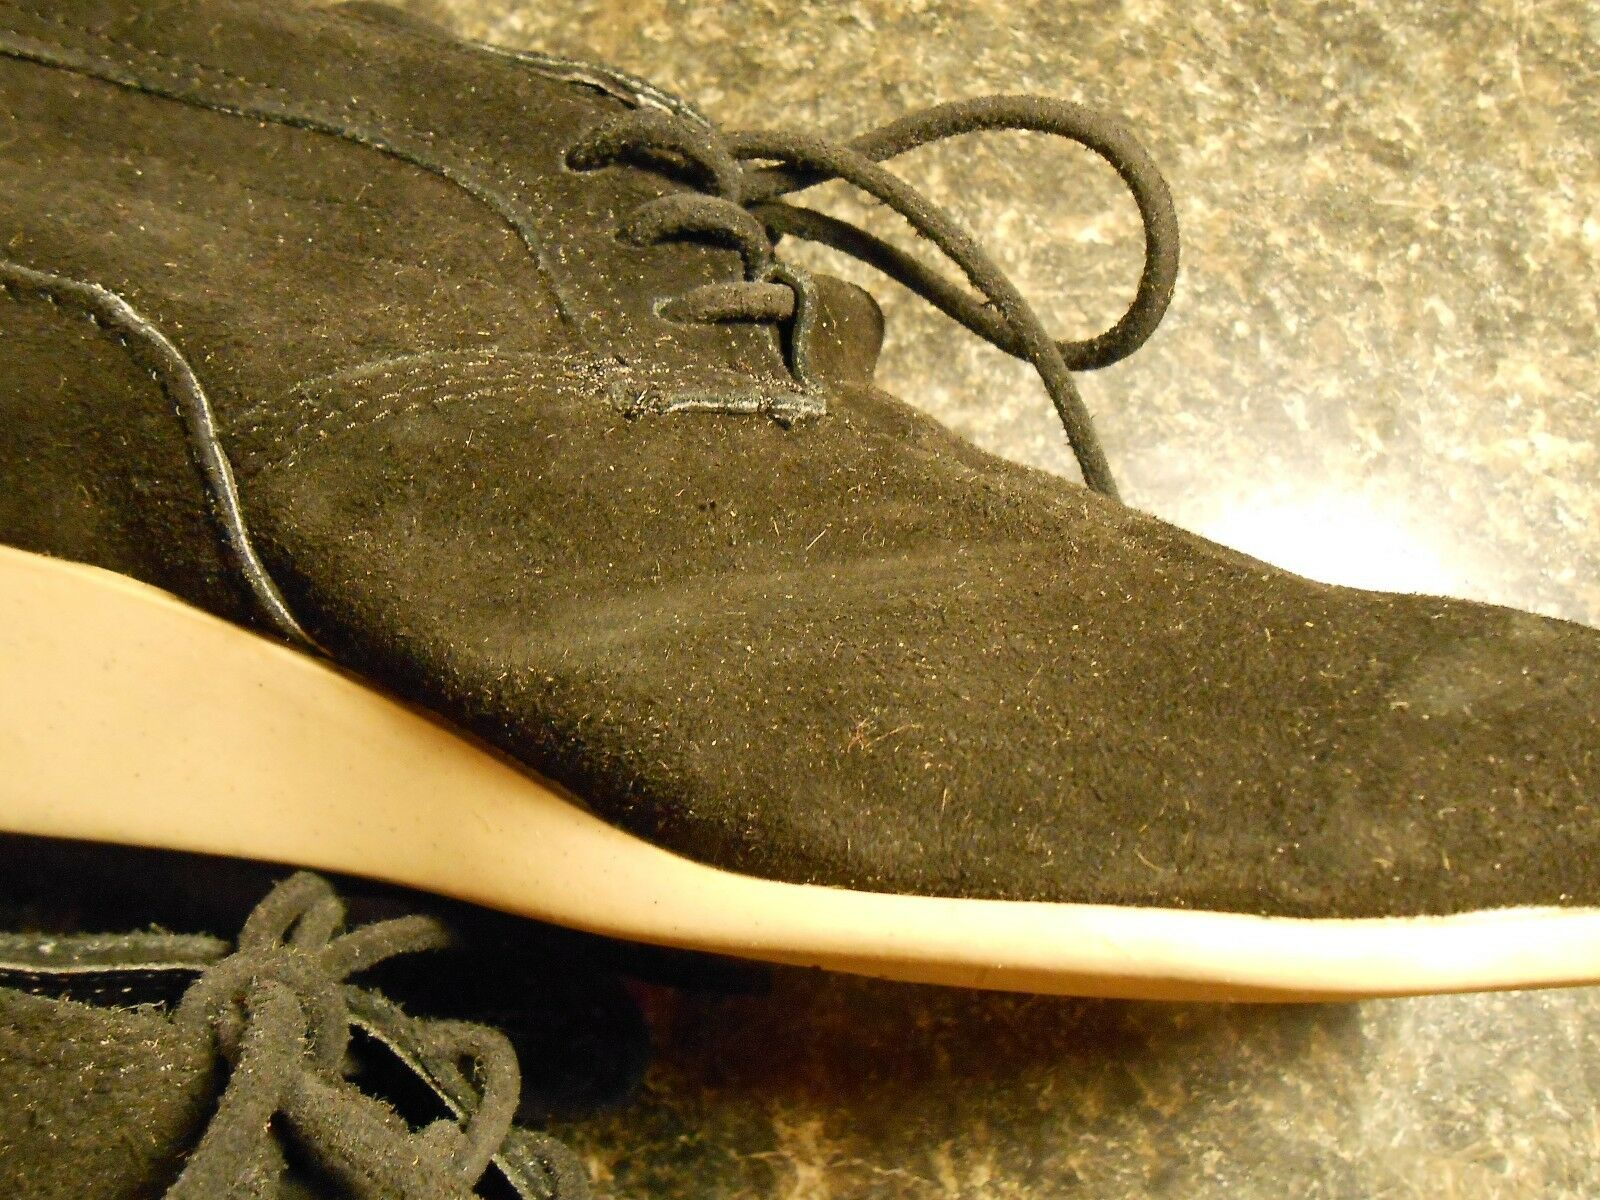 Oliberte schwarz suede Malawa leather oxford schuhe schuhe schuhe wedges display sz 7M New no box a3e559